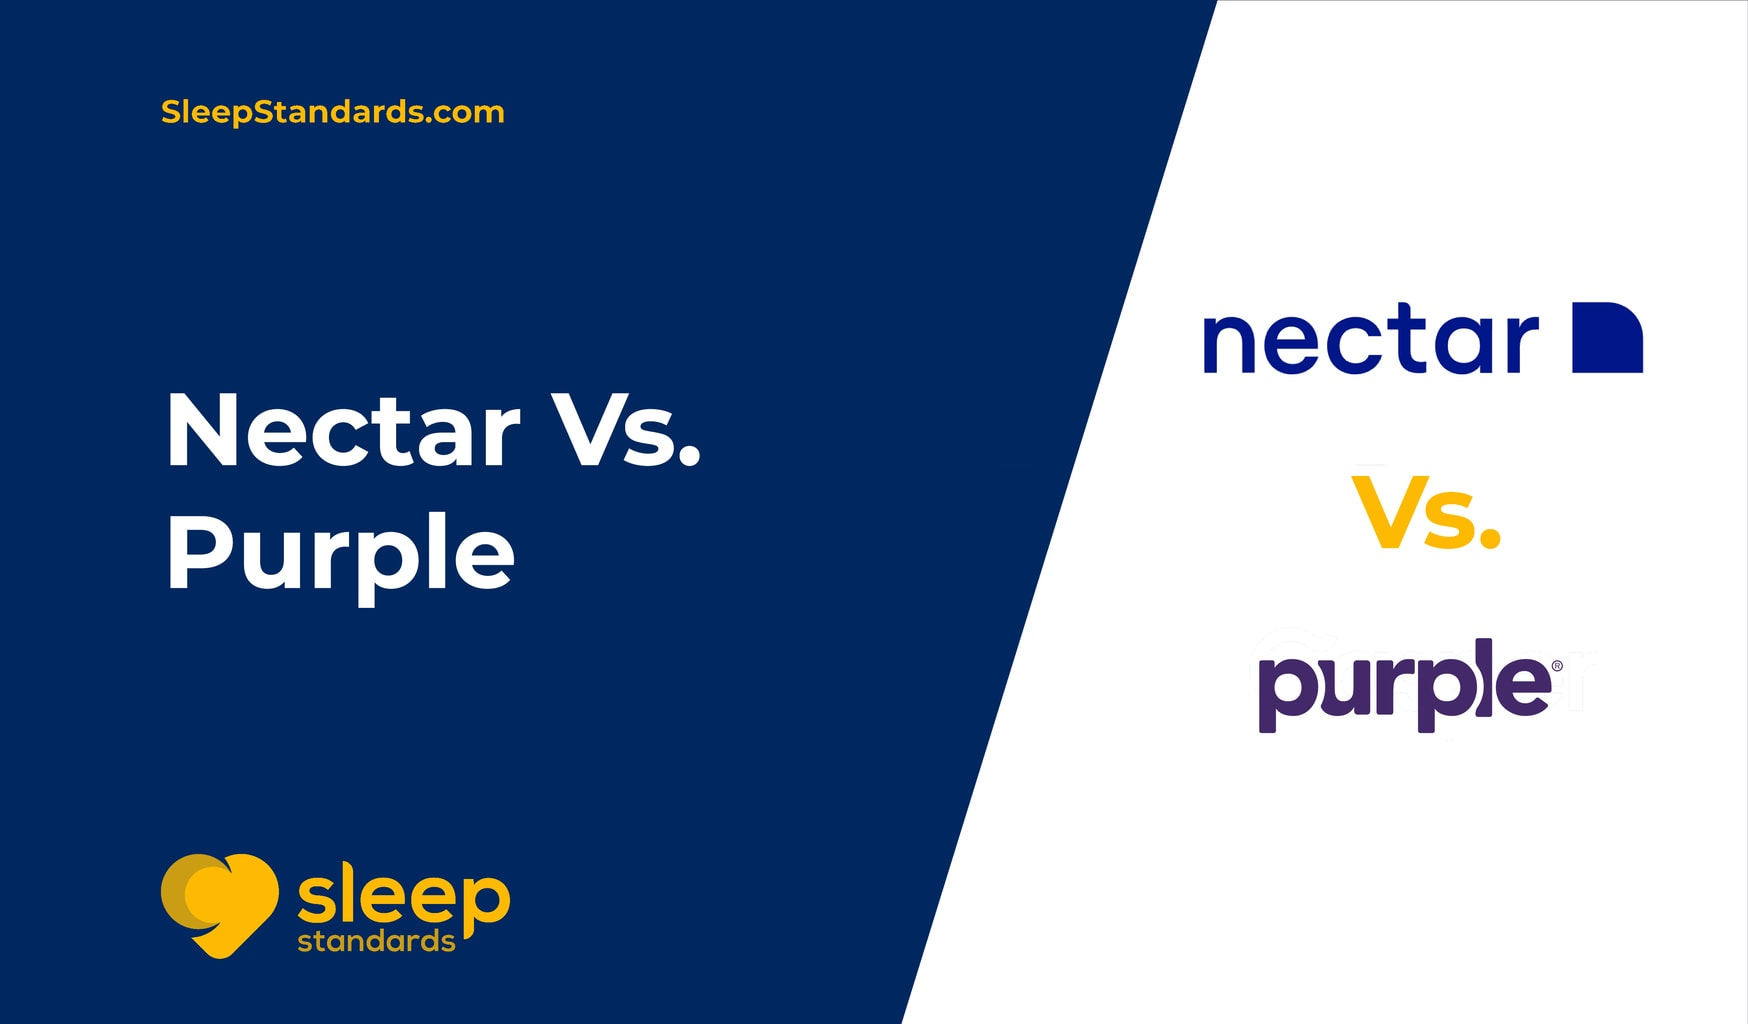 Nectar vs Purple